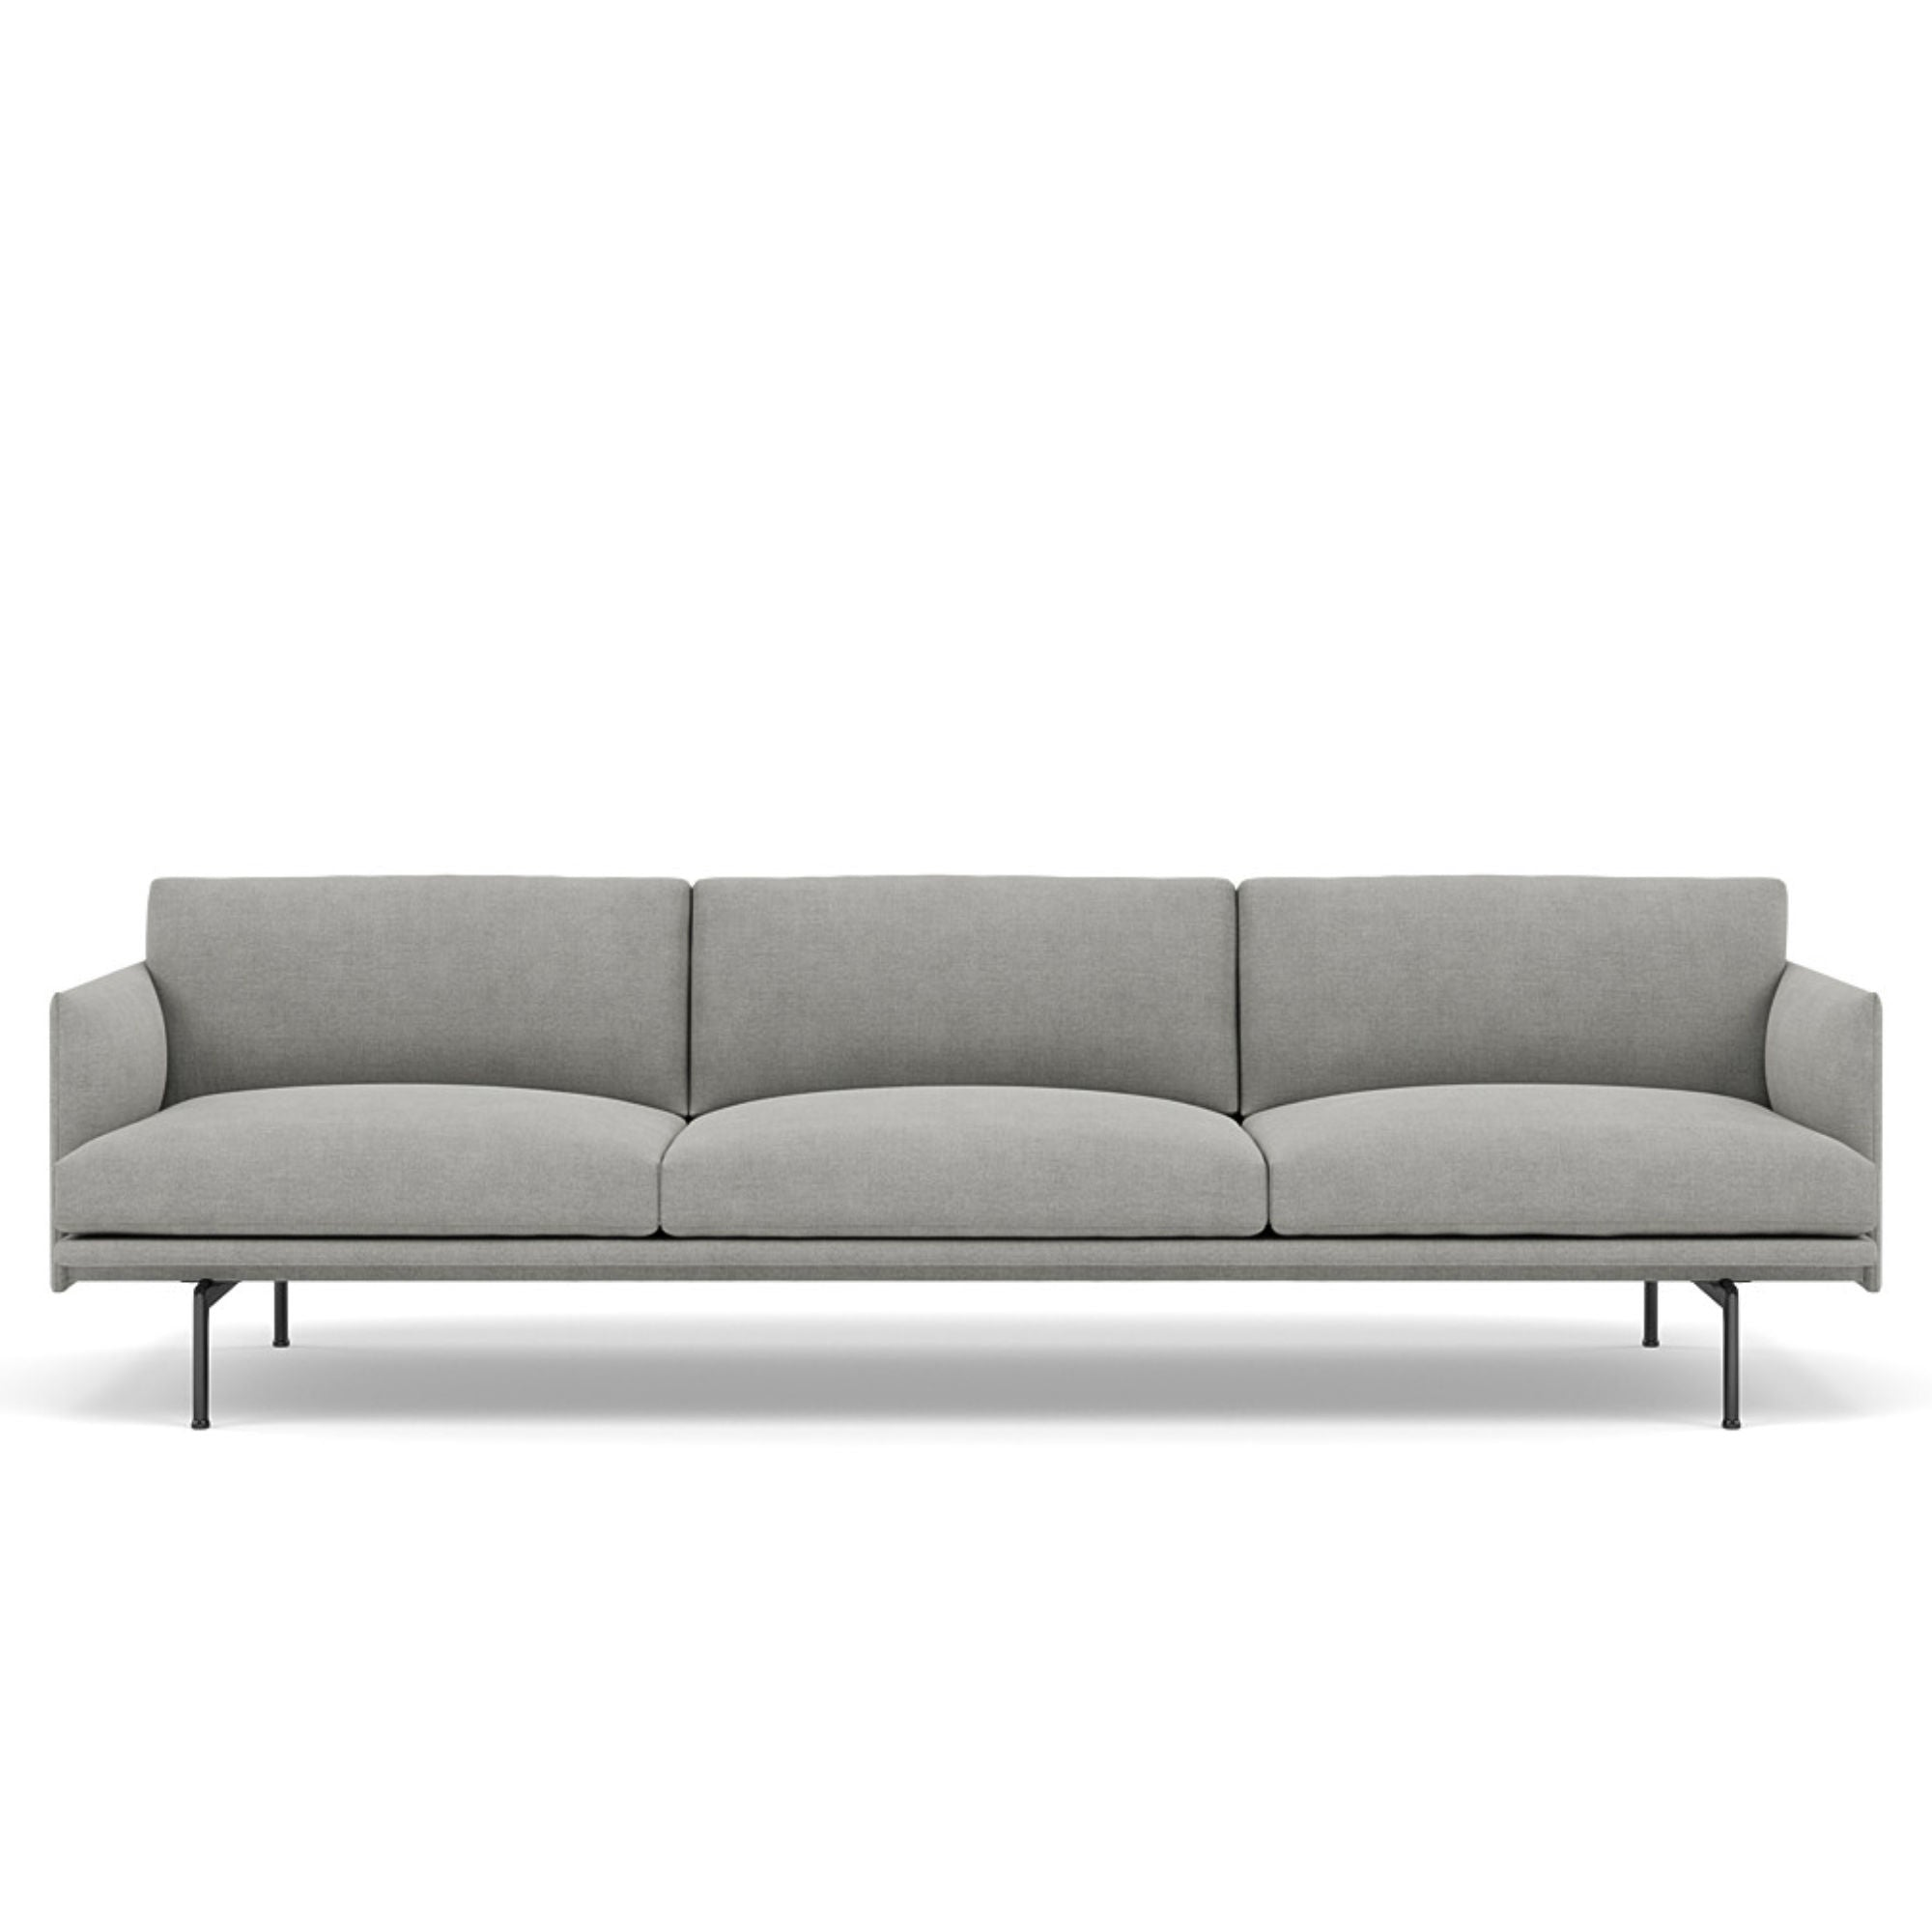 Muuto Outline Sofa 3 1/2-Seater Black Base , Fiord 151